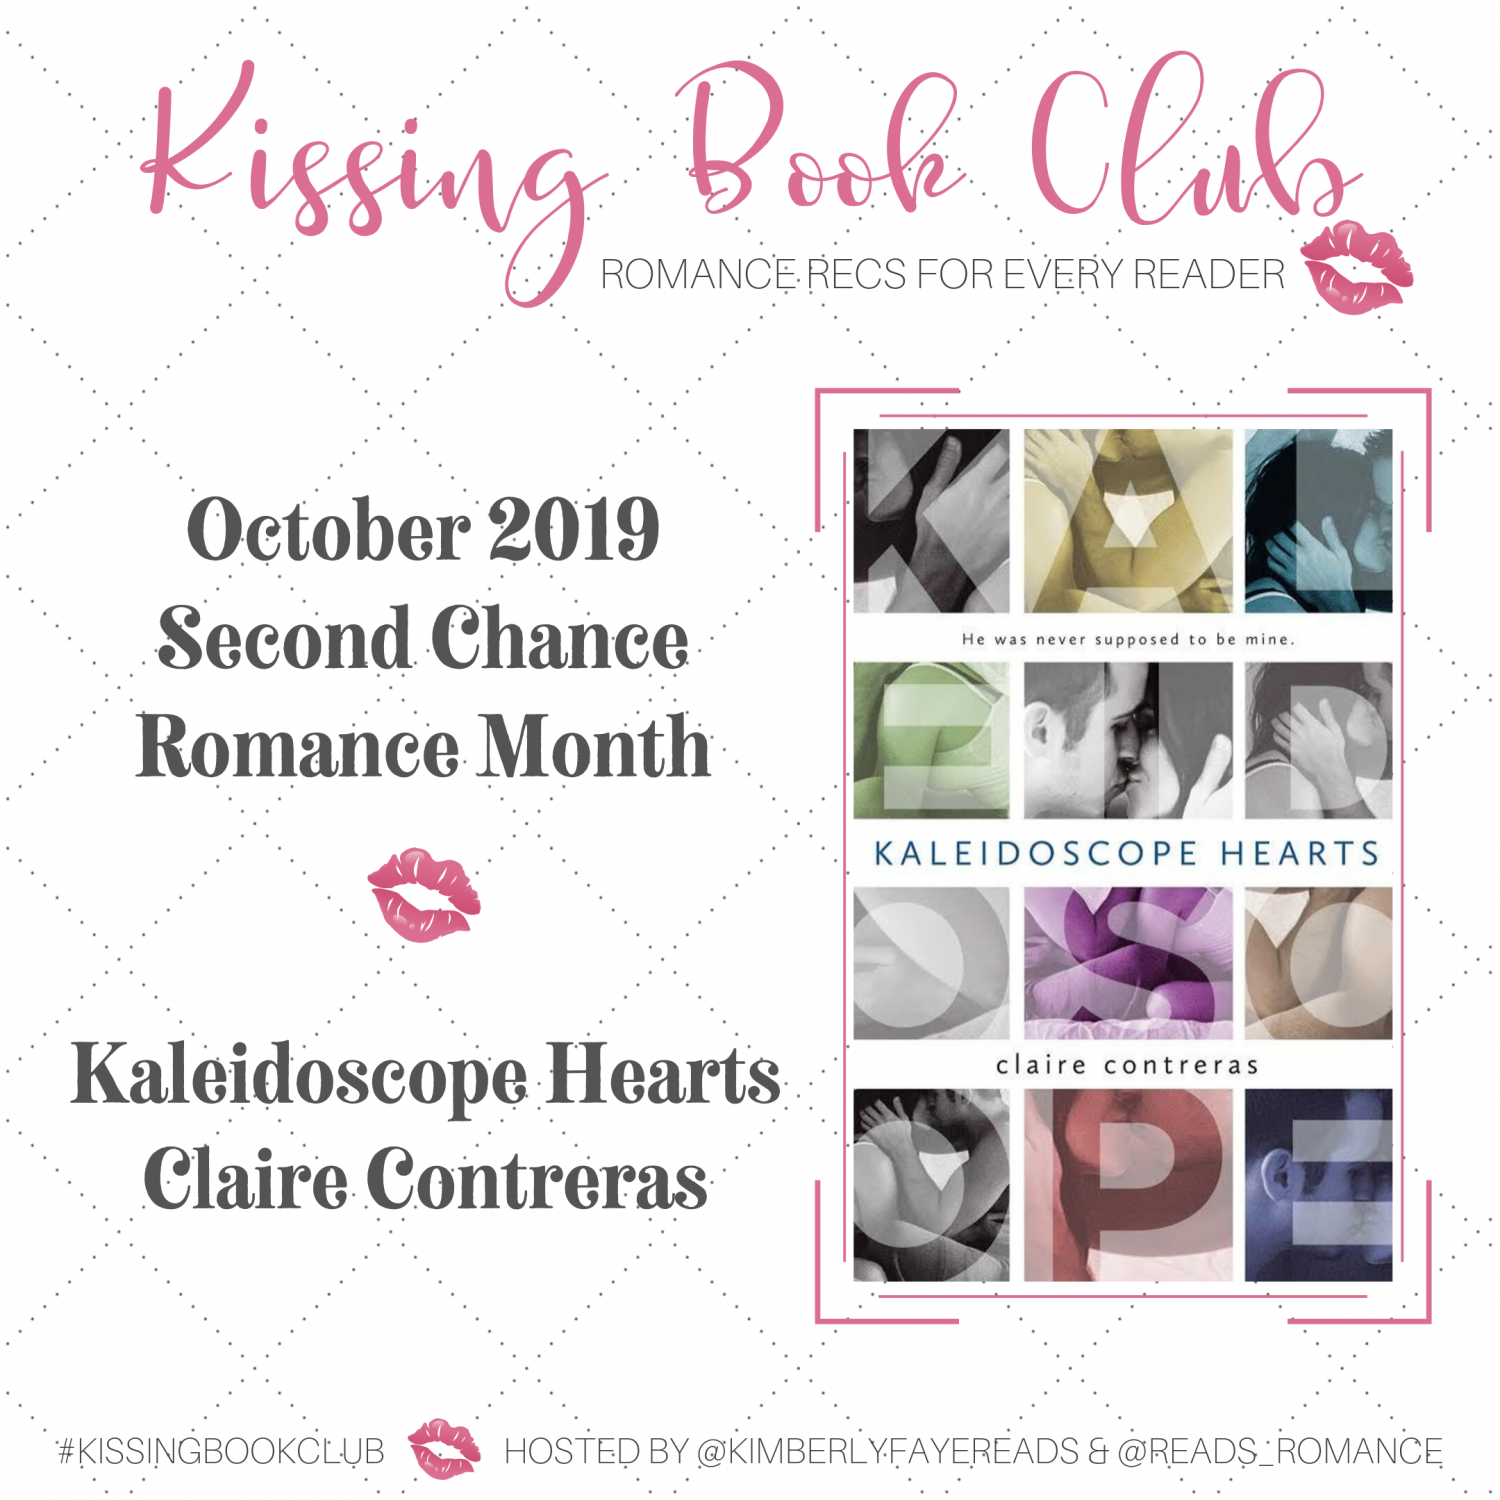 Kissing Book Club Oct. 19